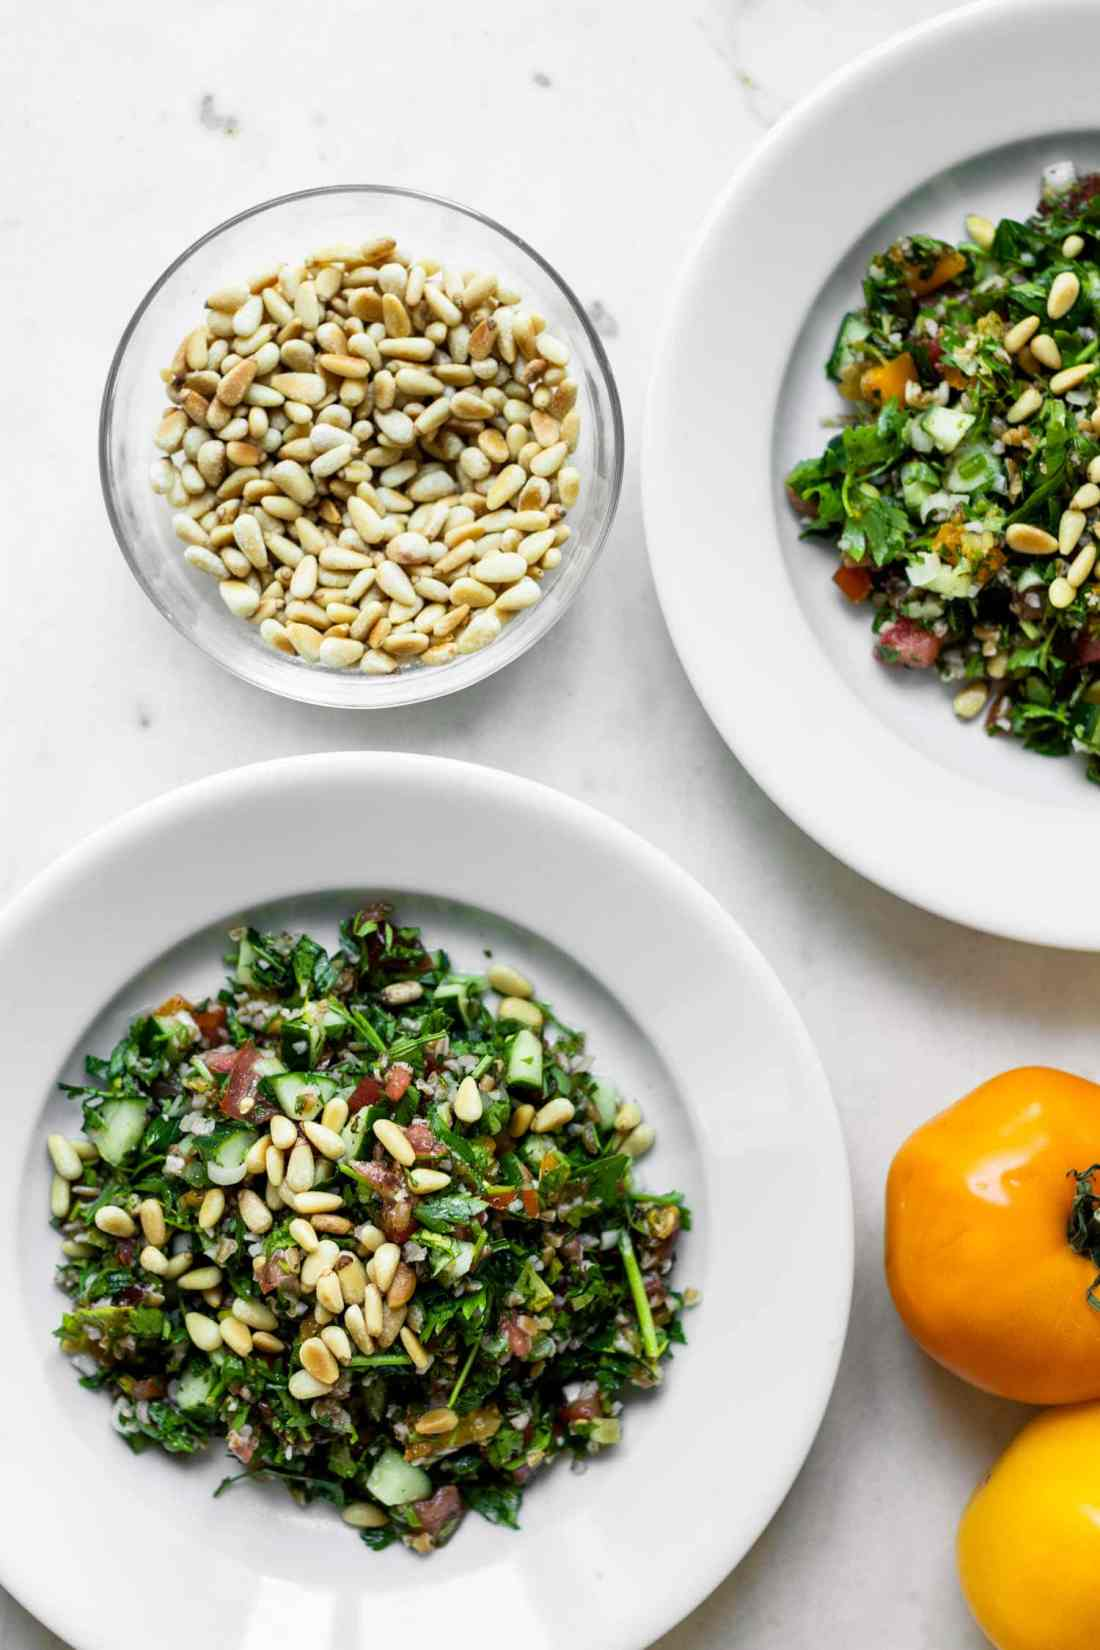 Top down view of two bowls full of tabbouleh topped with pine nuts with tomatoes and bowl of pine nuts on a marble surface